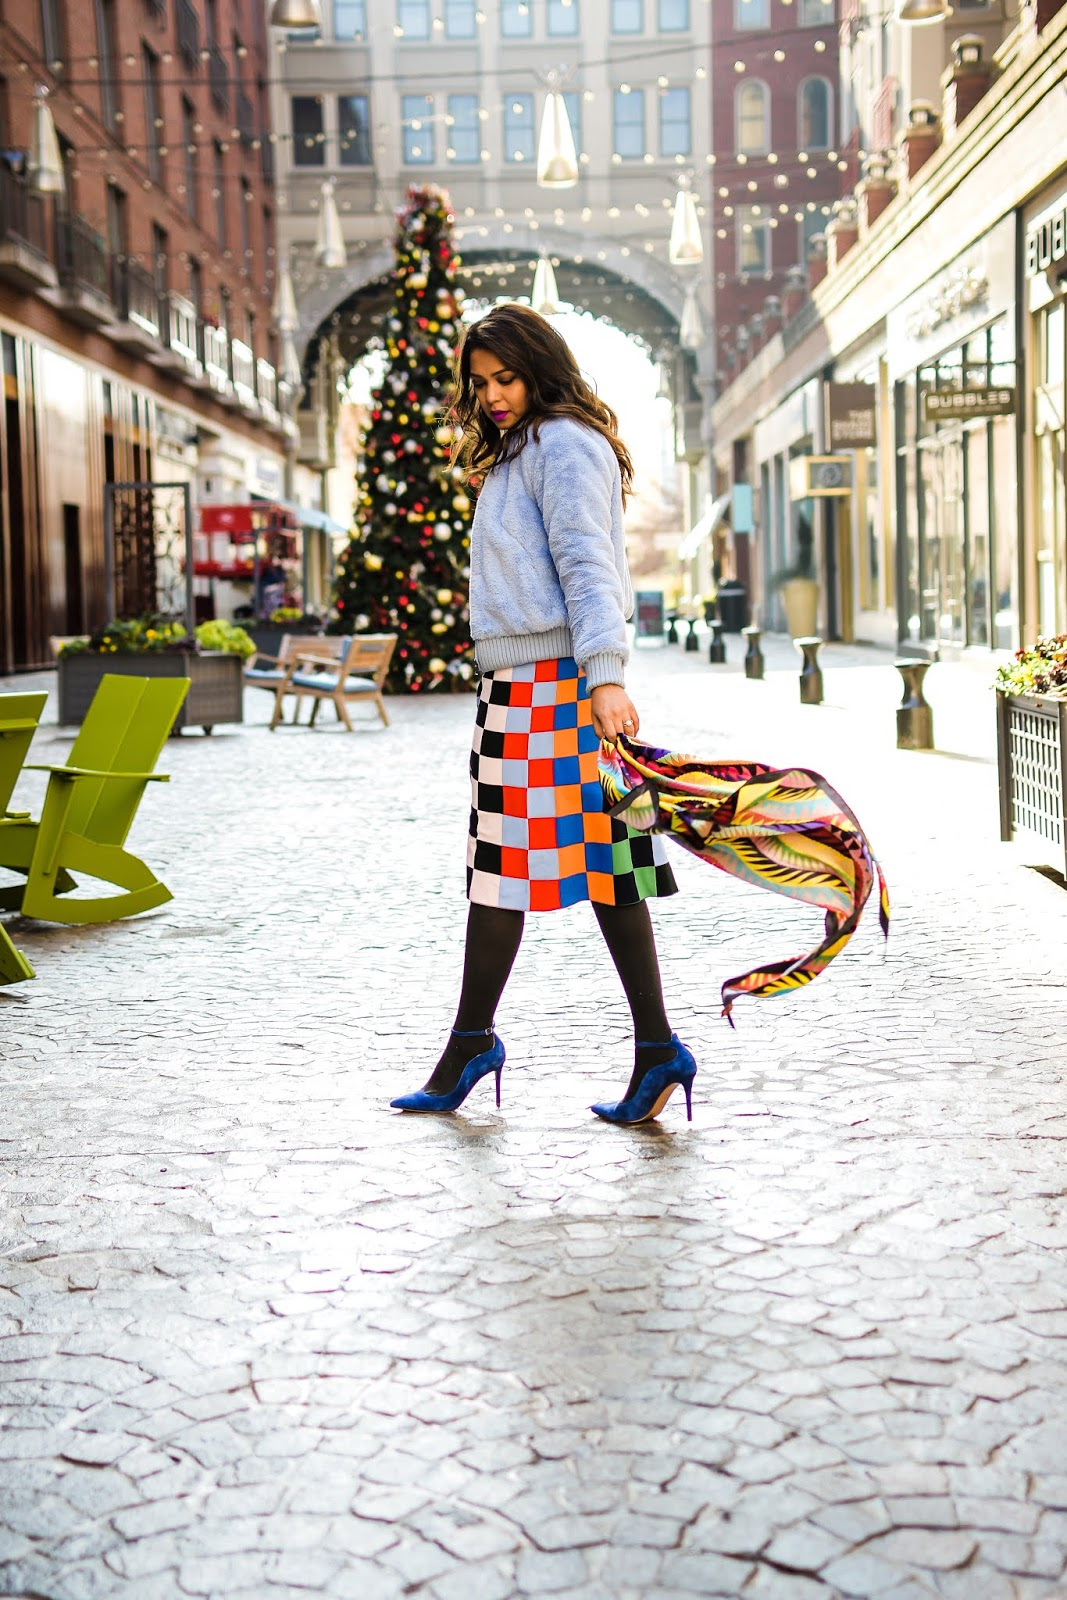 winter sales, items to shop for during the winter sale, Tory burch skirt, banana republic teddy coat, sporty outfit, blue pumps, winter look, myriad musings, Saumya Shiohare